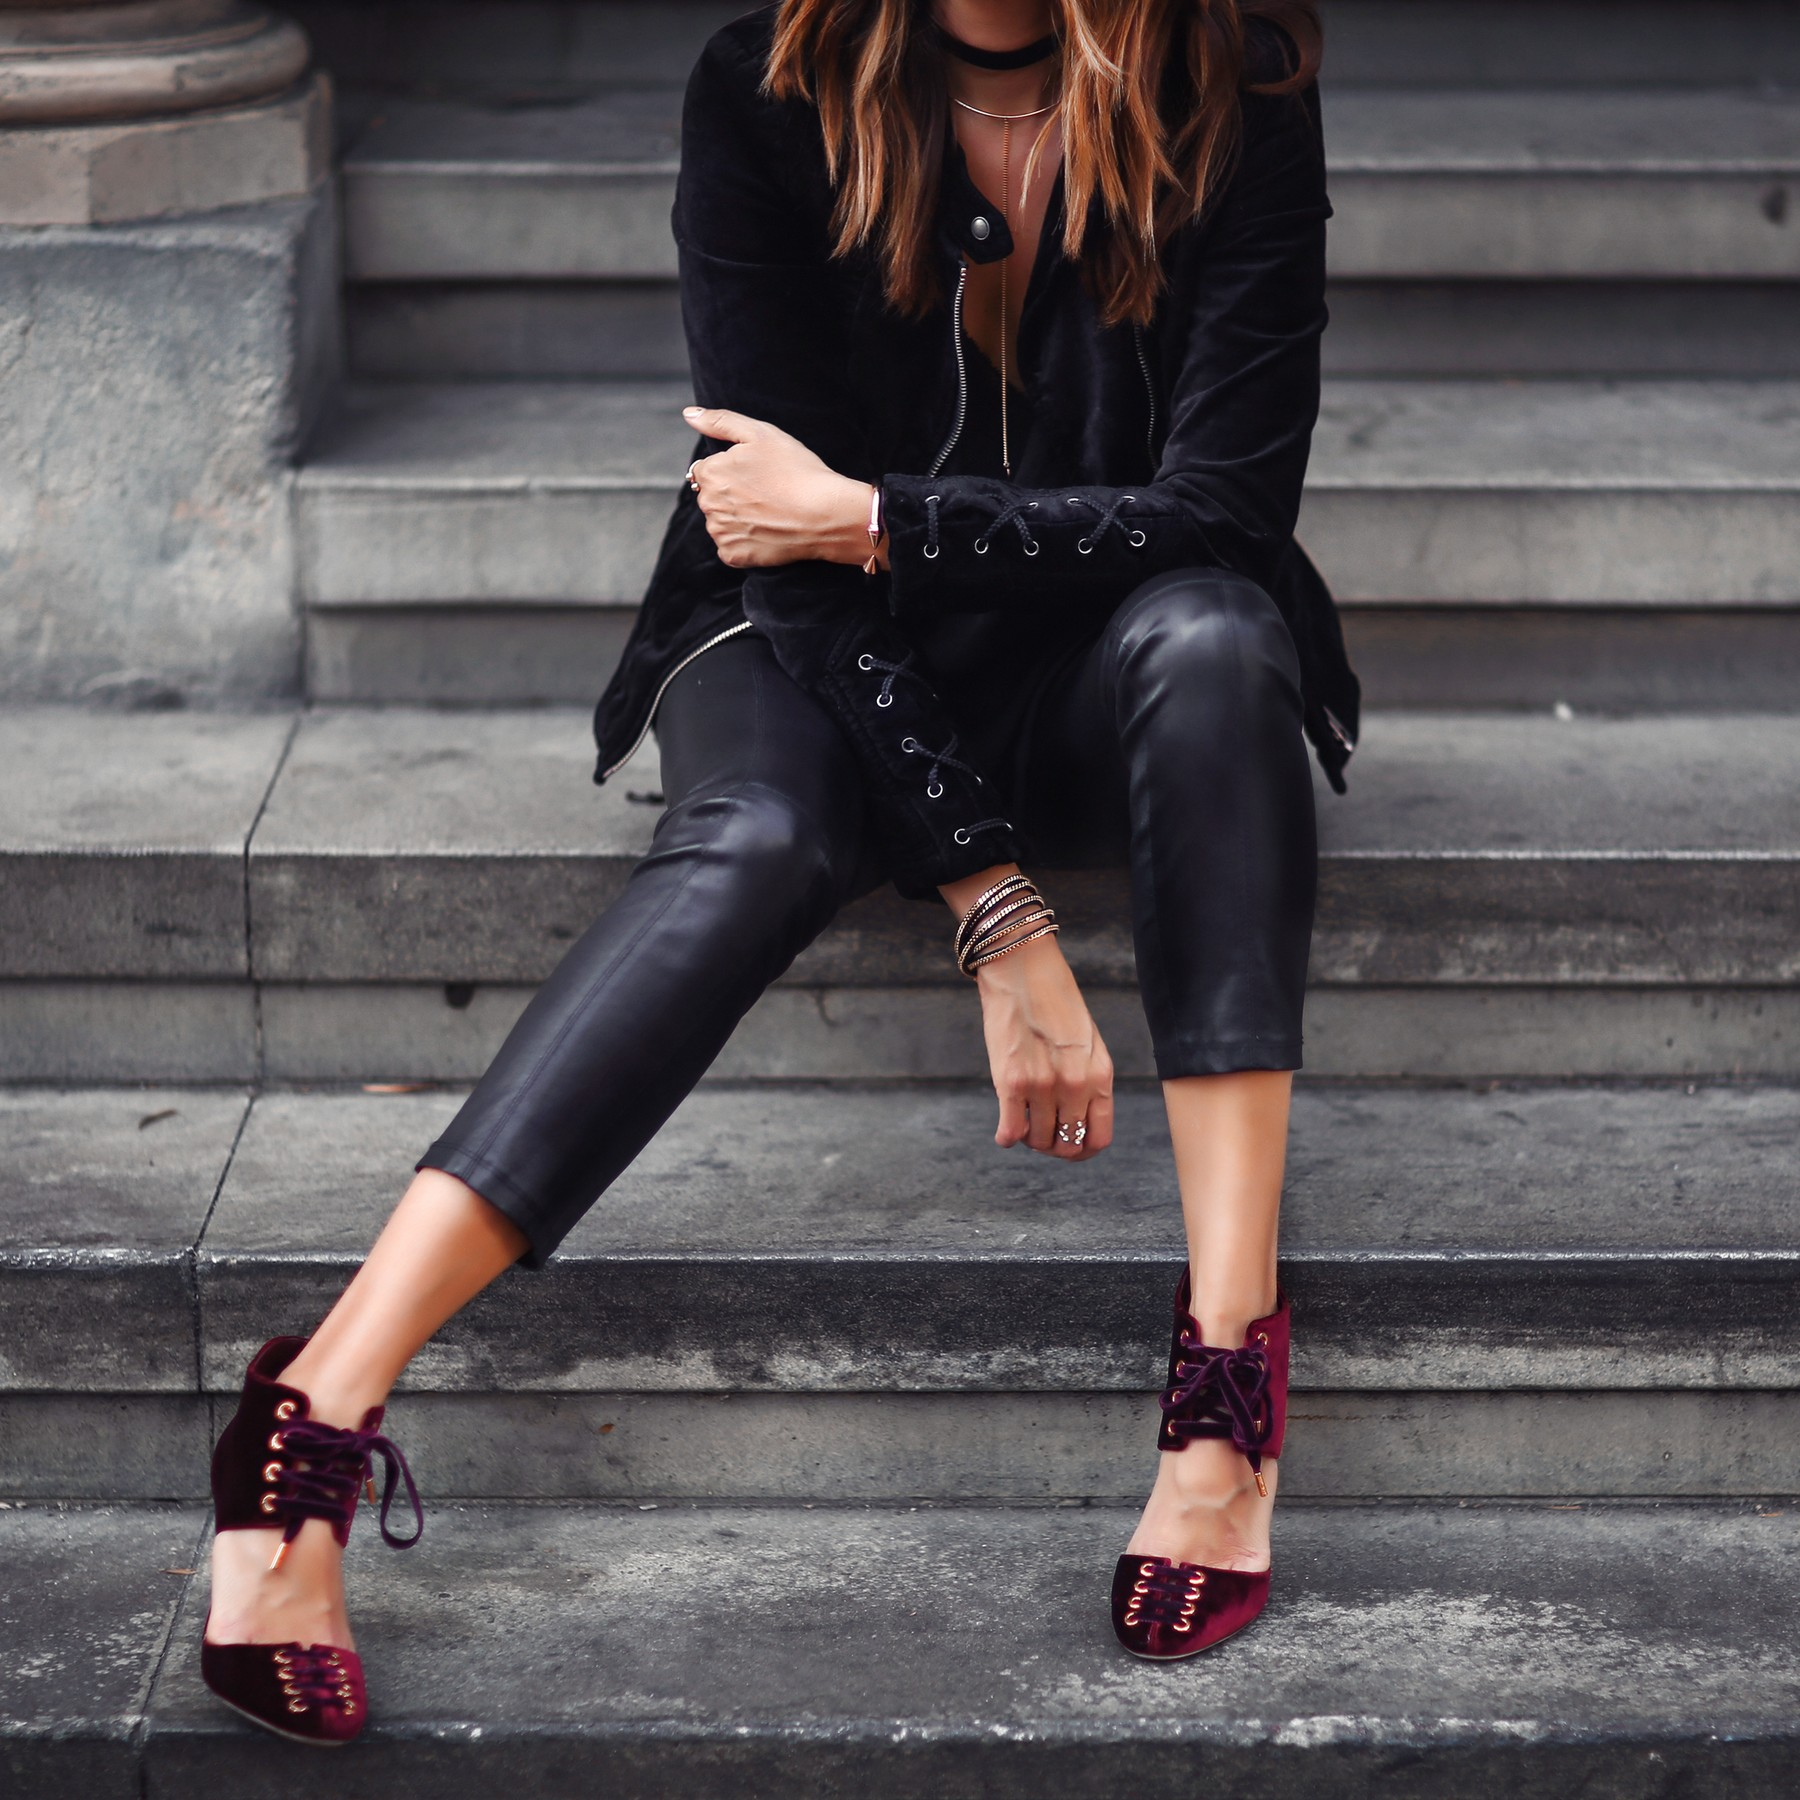 black velvet jacket, leather pants, and red velvet heels